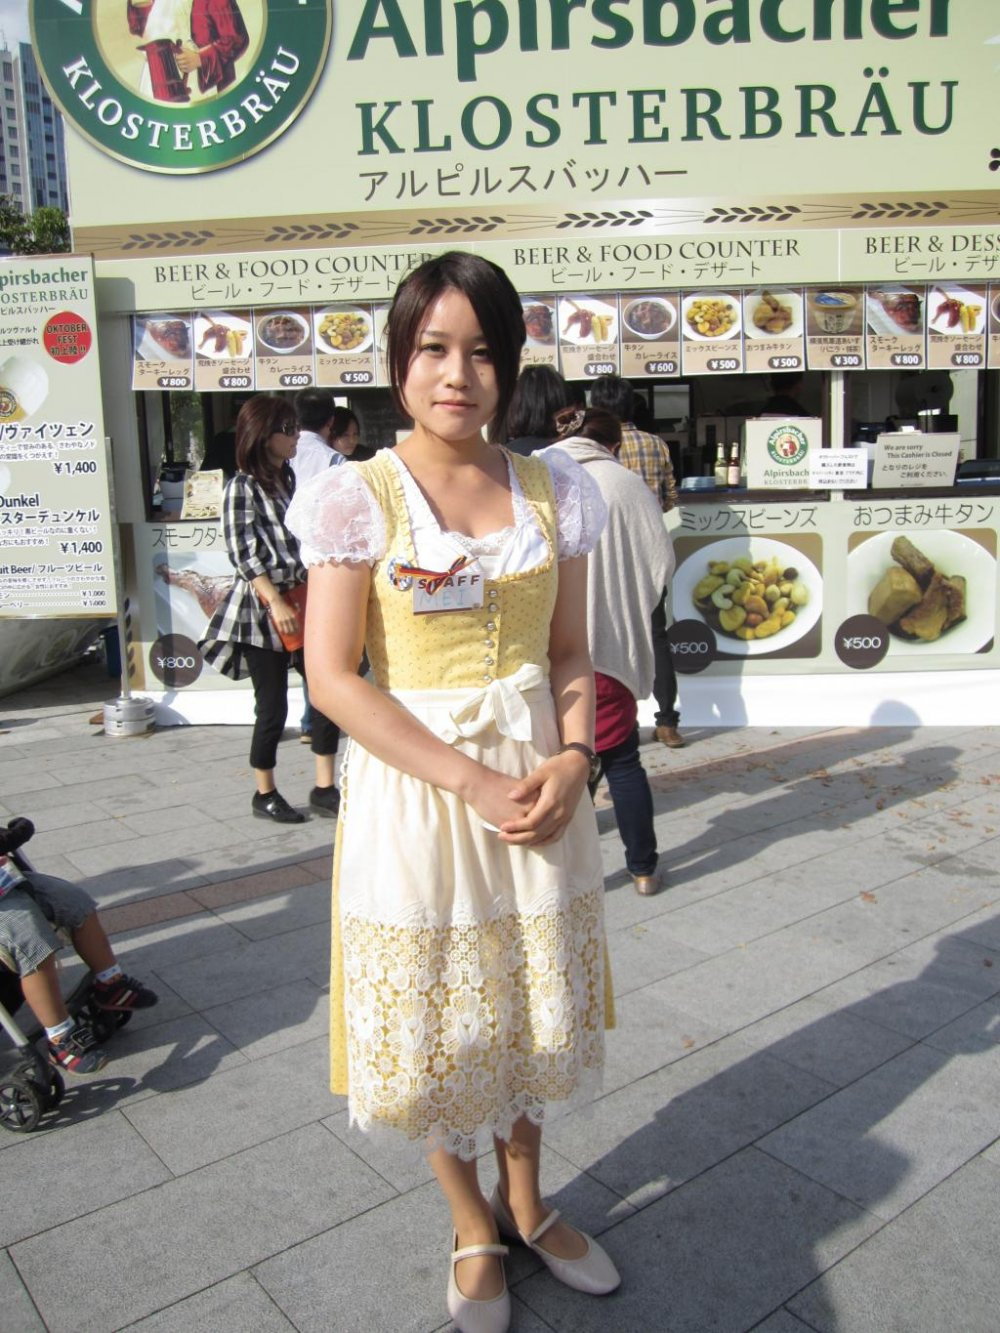 Japanese girl in German clothes